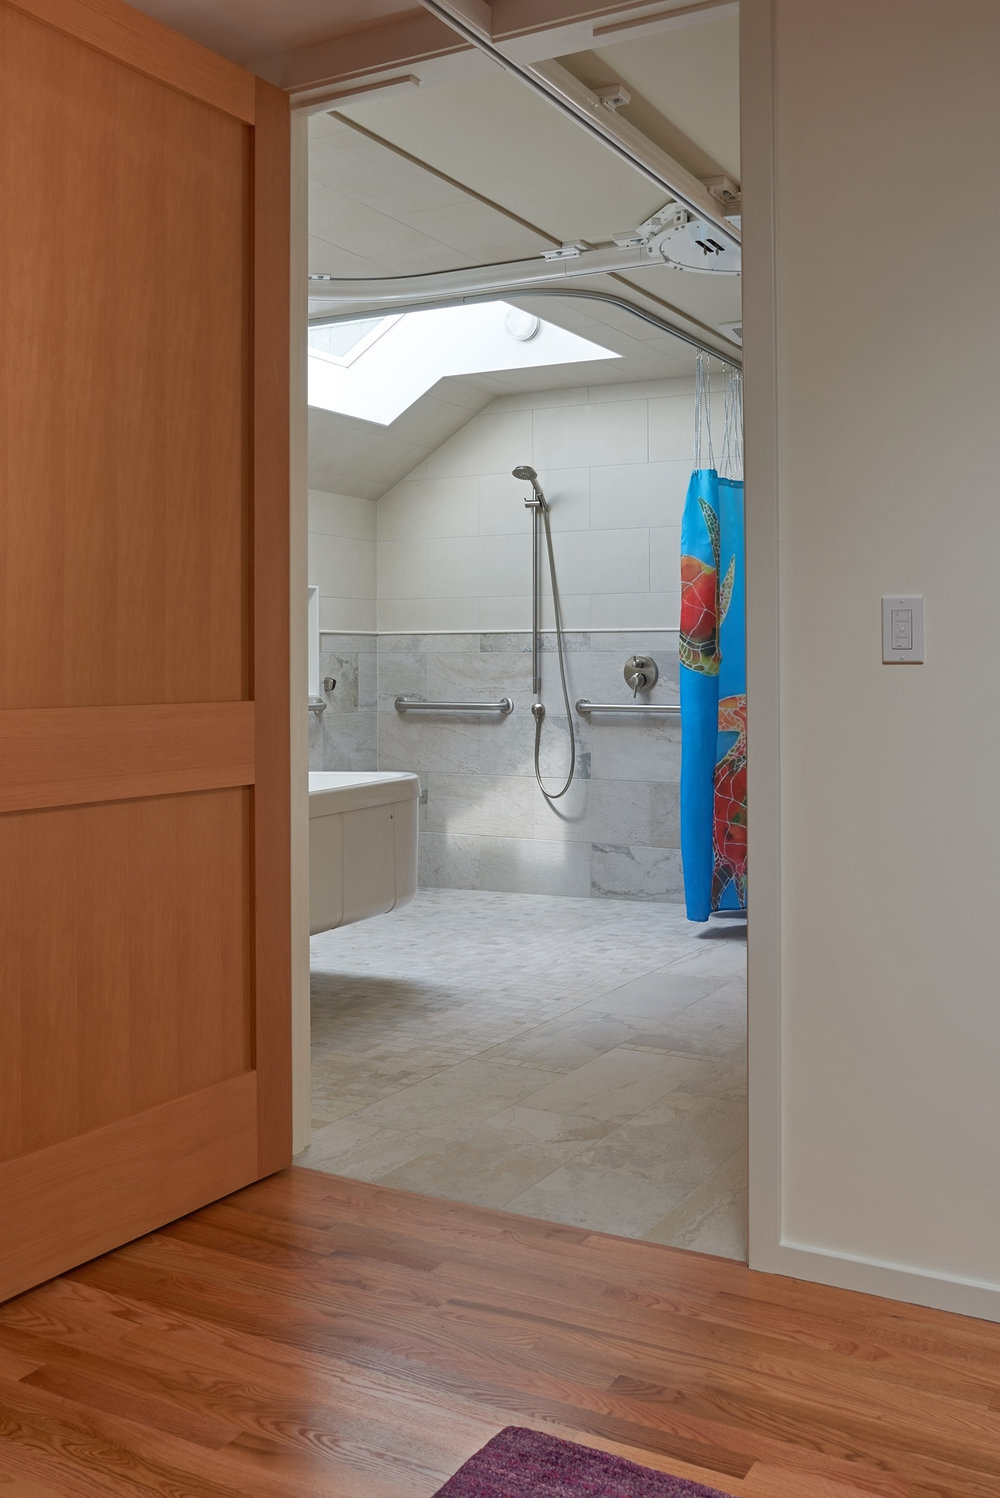 The bathroom features an adjustable-height tub and open shower area washed in natural light.